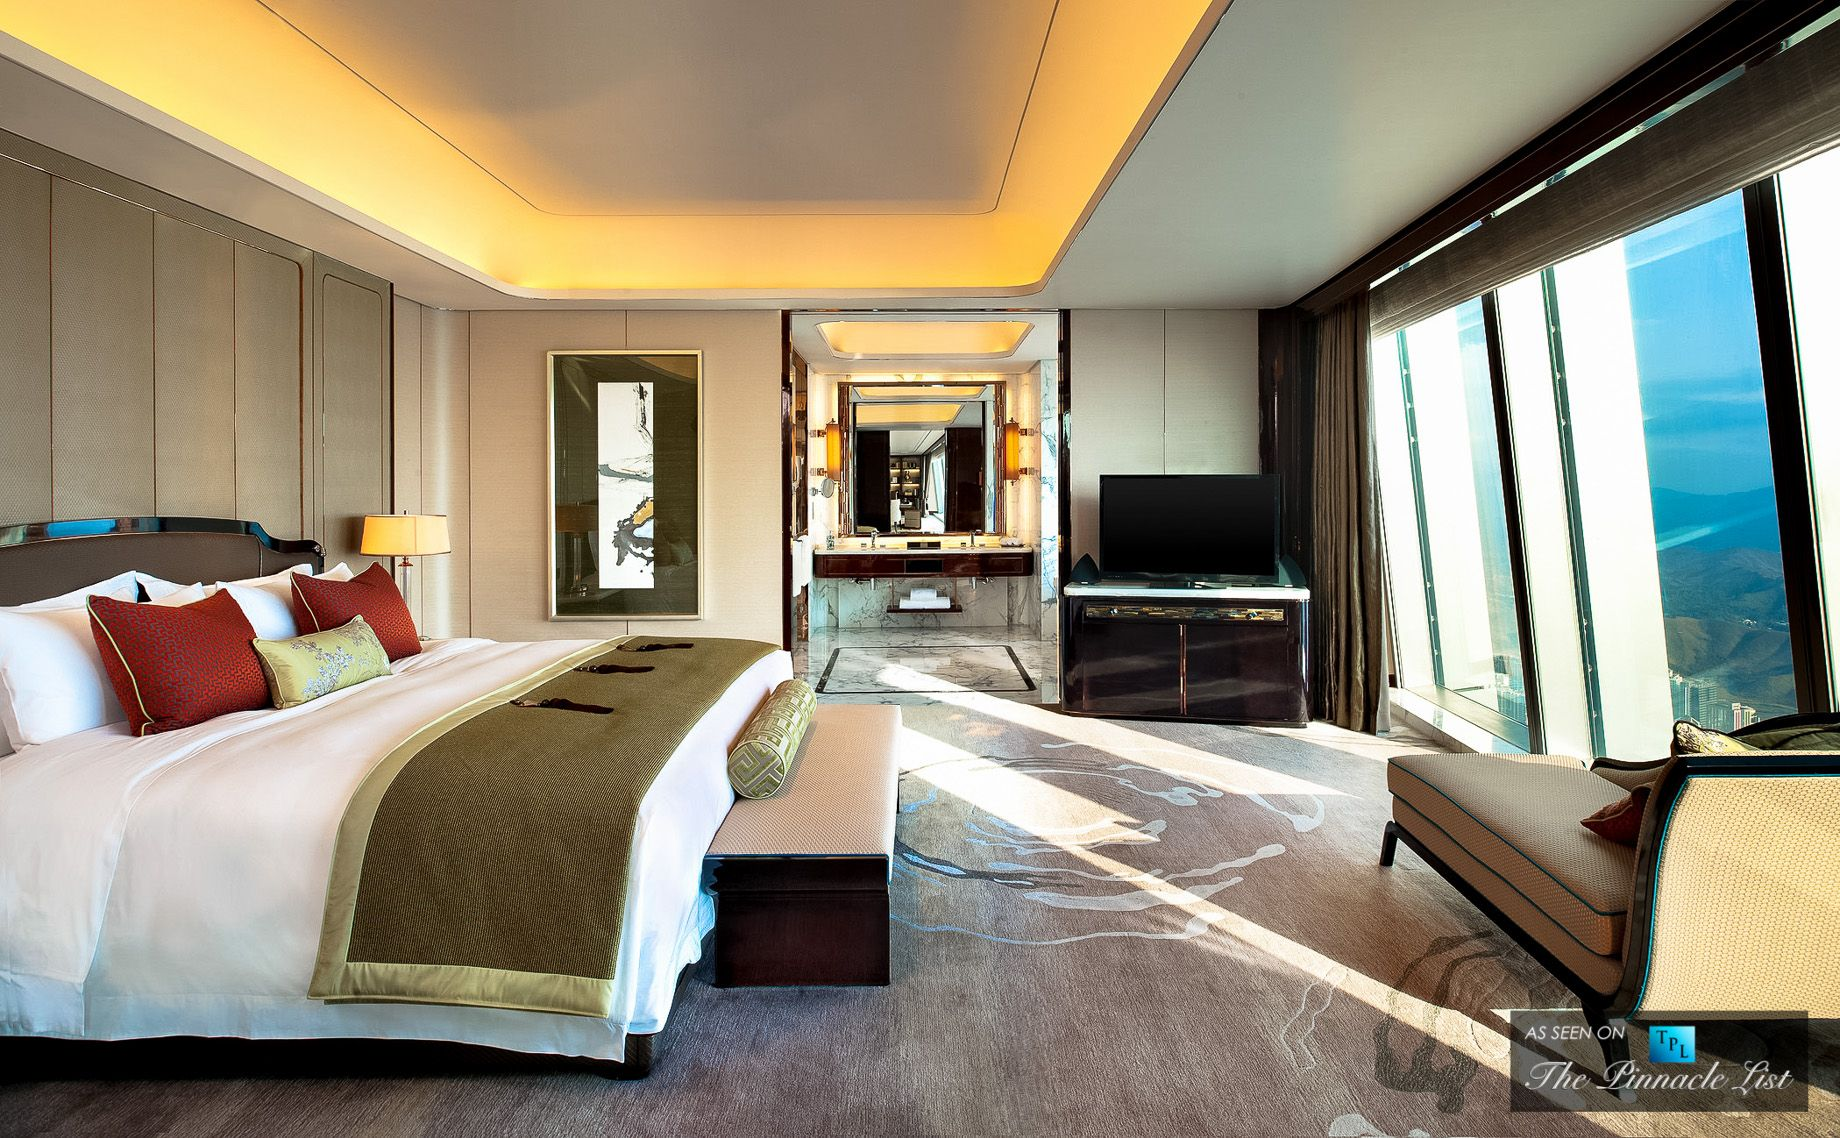 Regis luxury hotel shenzhen china presidential suite for Nice hotel design